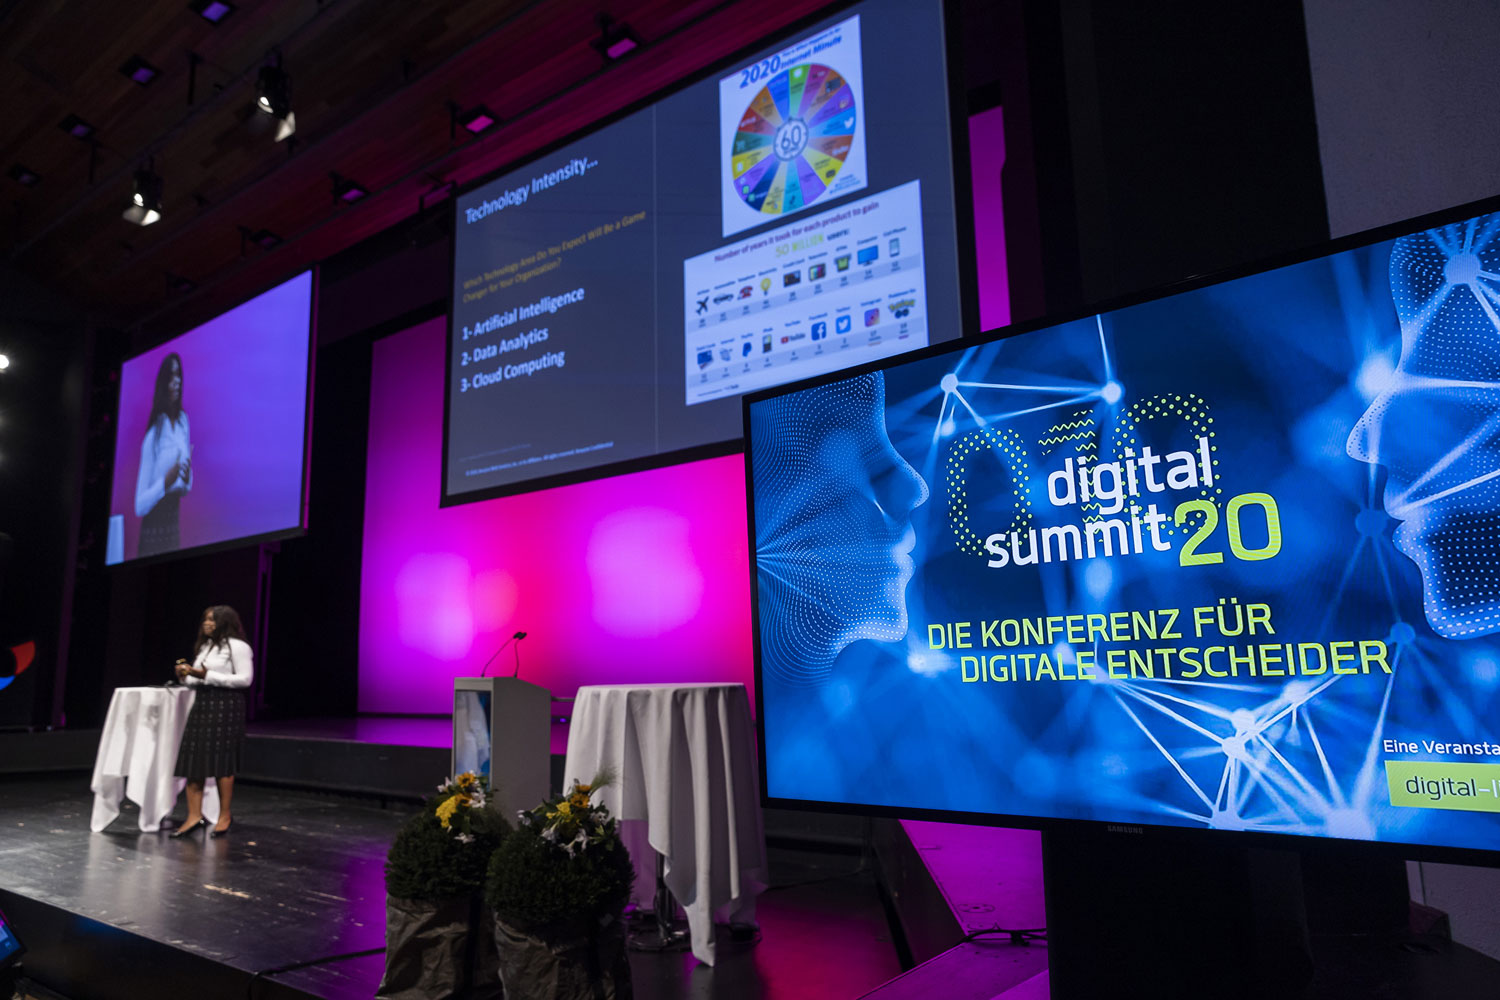 Digital Summit 2020 Vaduz